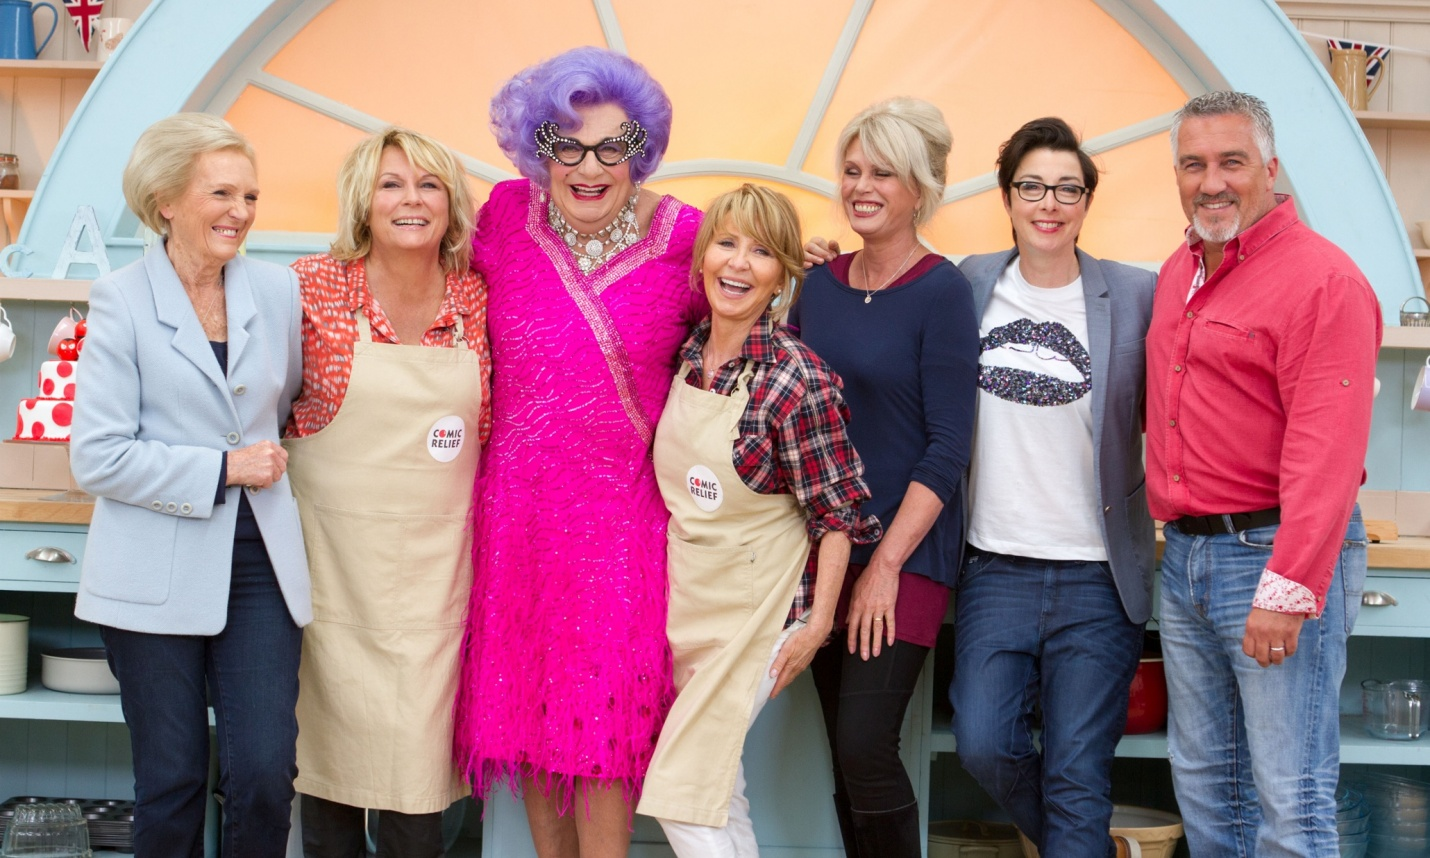 Suelen Travesti Nuestro Radar Travesti Se Activa The Great Comic Relief Bake Off